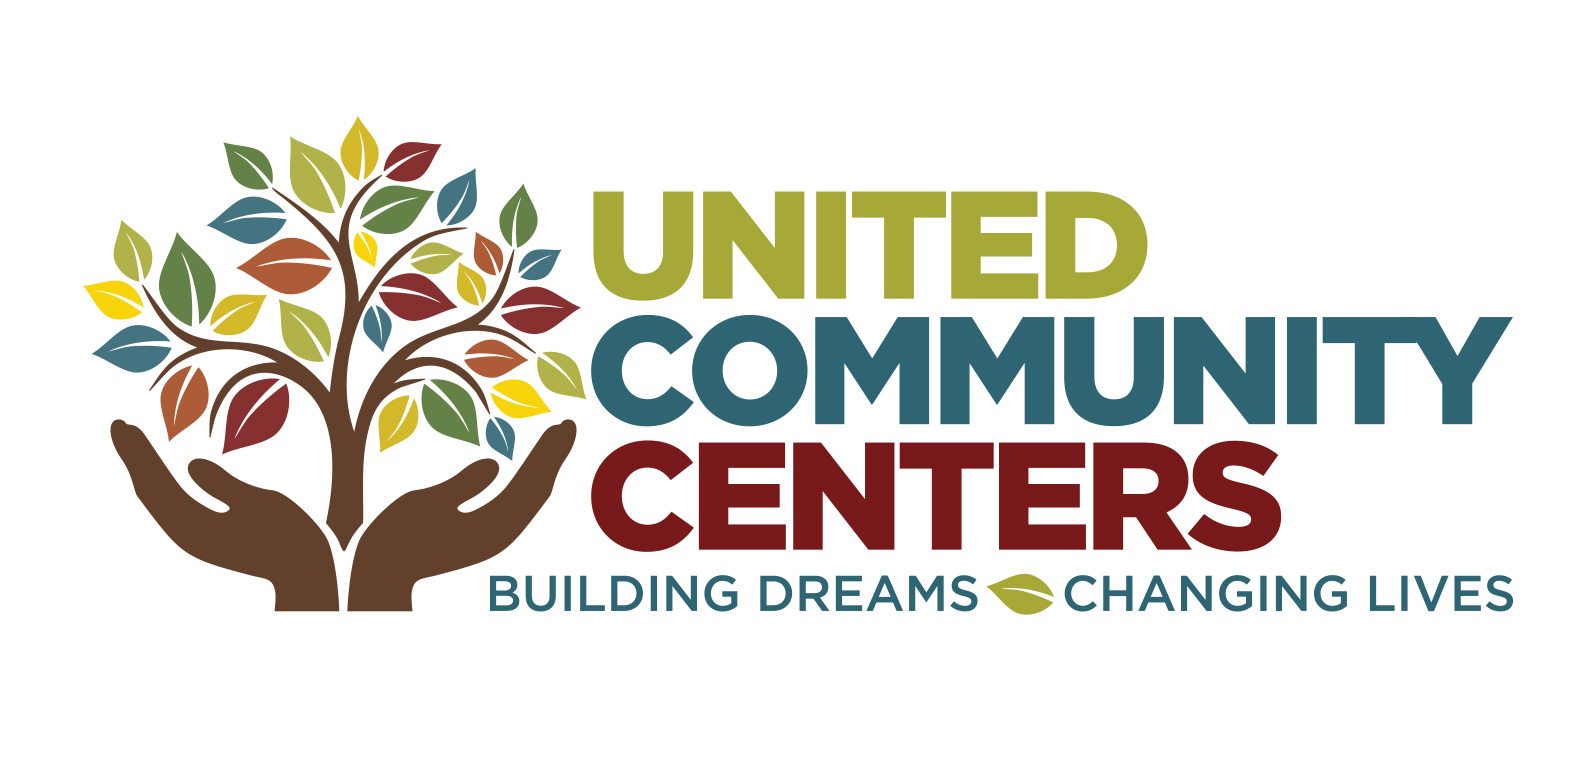 United Community Centers Branding The Versatility Group